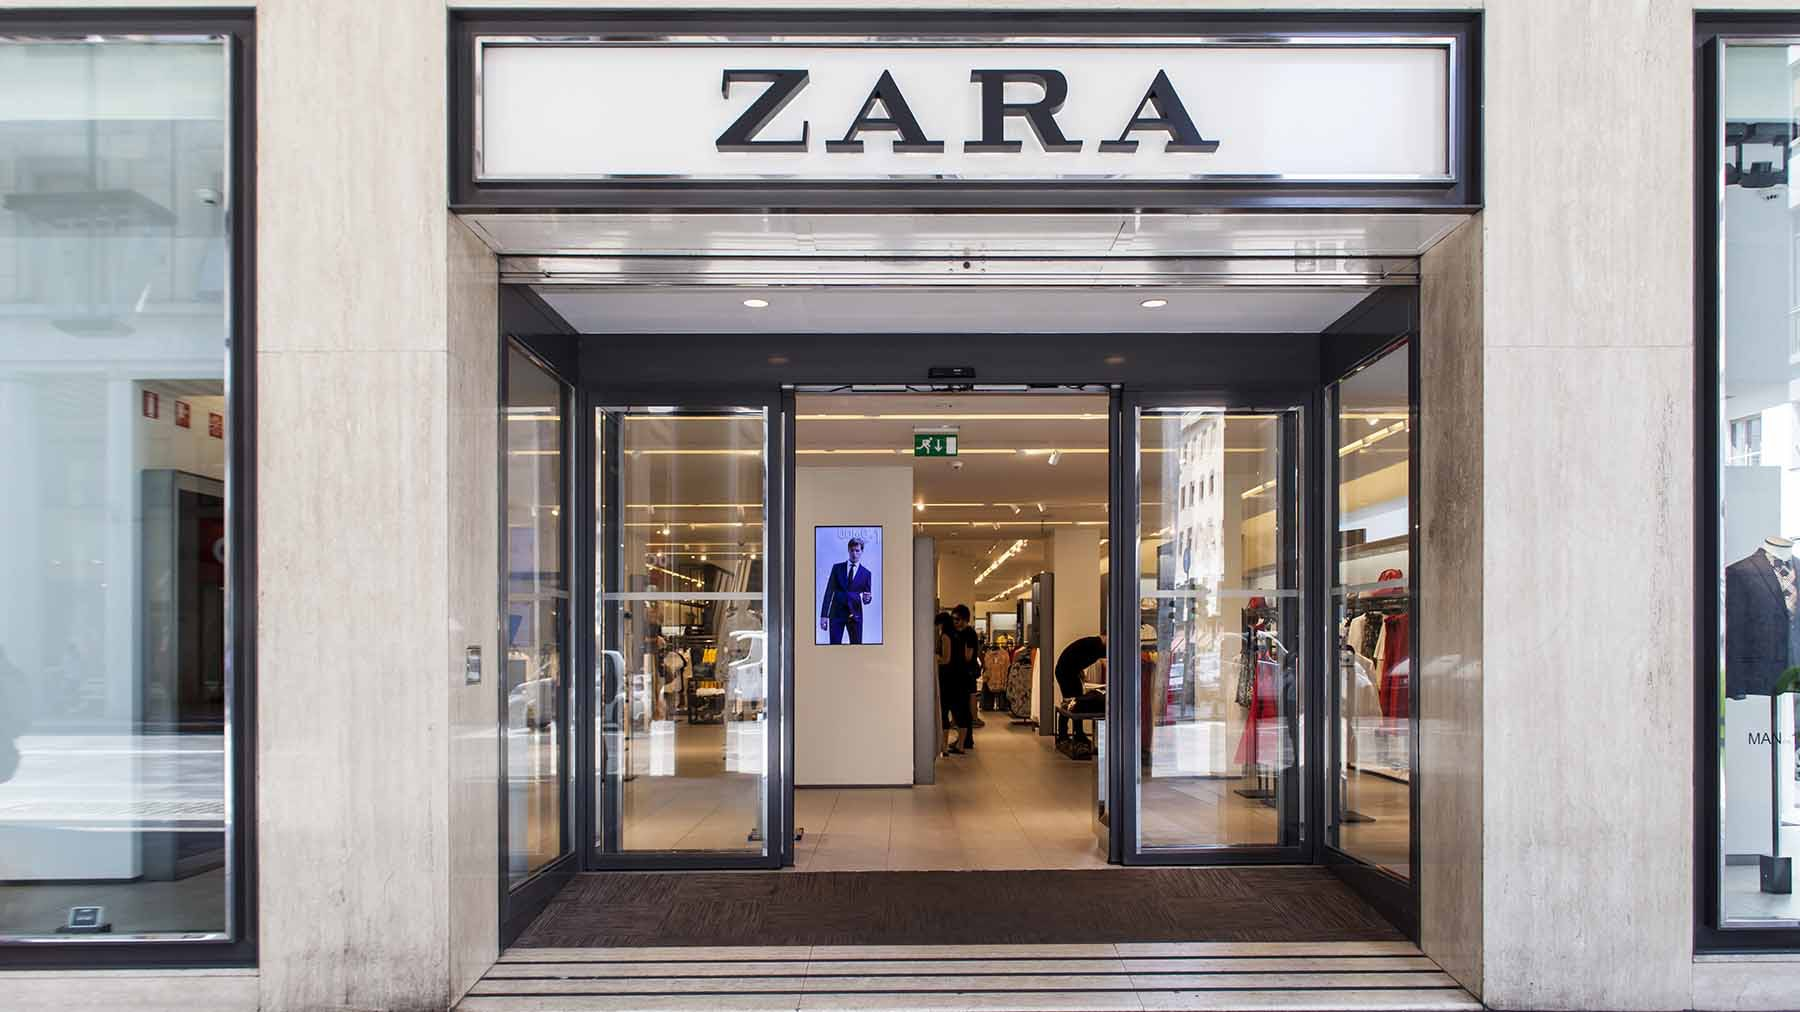 Zara Owner Inditex Sees Profit Growth of 9% in the First Half